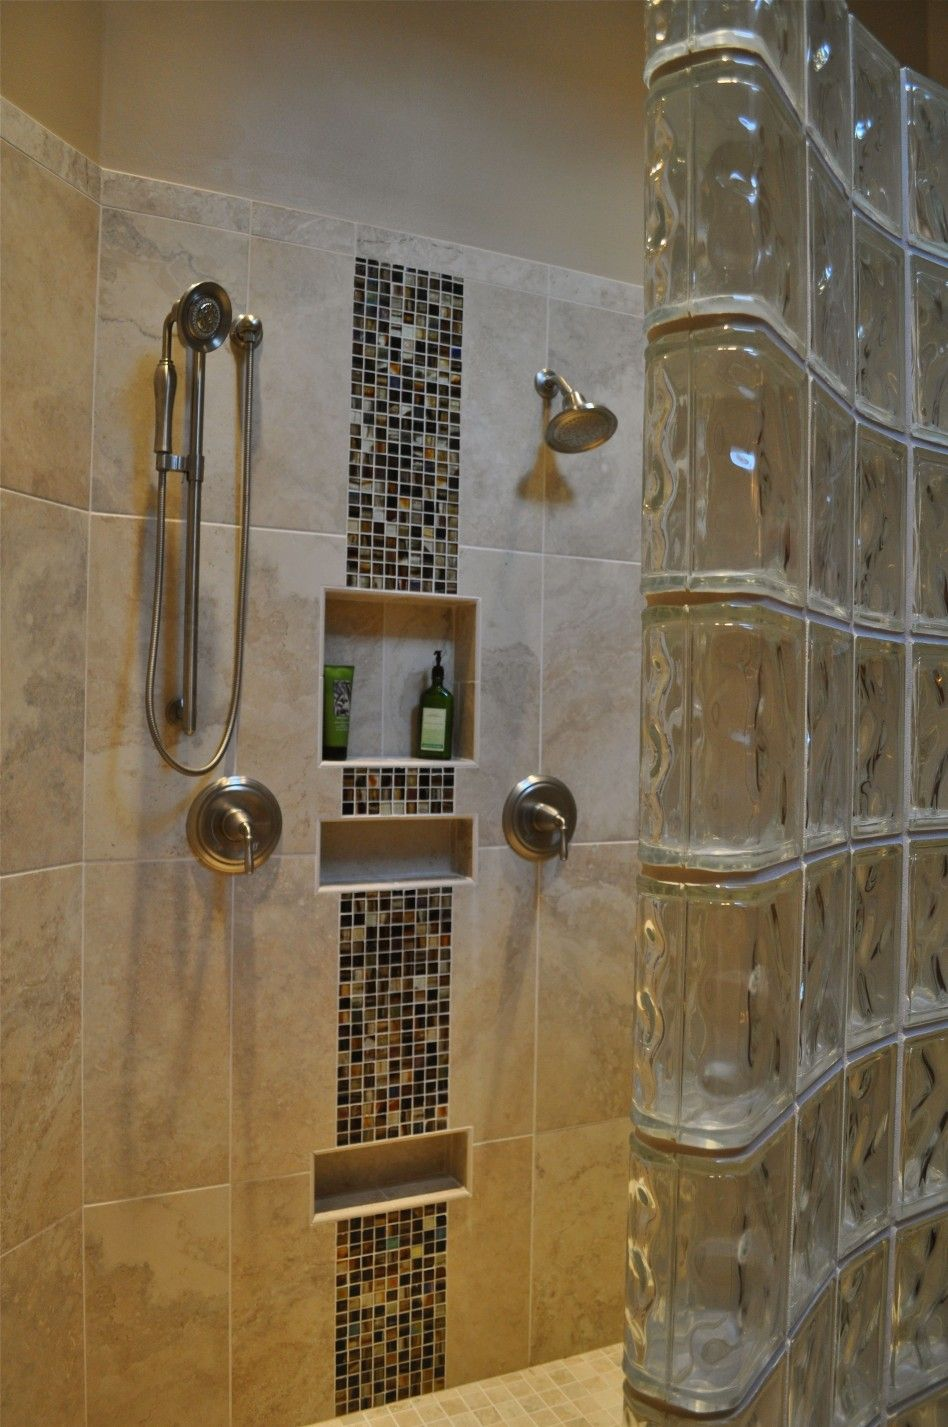 Mosaic Tile Shower Walk In And Ceramic Wall Also Hand Held Showerhead